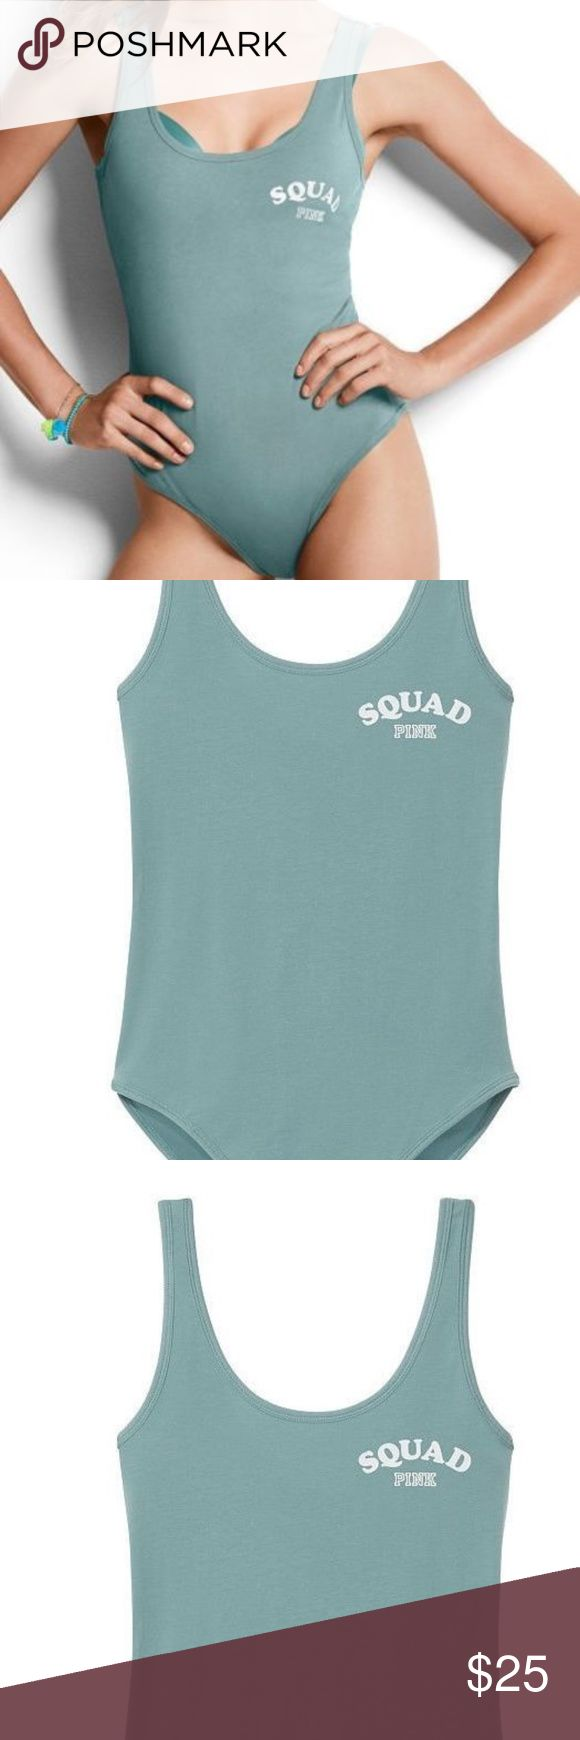 VS PINK Bodysuit One Piece Green L Squad Goal D11 Victoria's Secret                   d11 PINK   Bodysuit Snap Bottom Closure Stretch Fit made of cotton/spandex  Brand New Sealed in Plastic Graphic print on Front says SQUAD GOALS Size Large PINK Victoria's Secret Tops